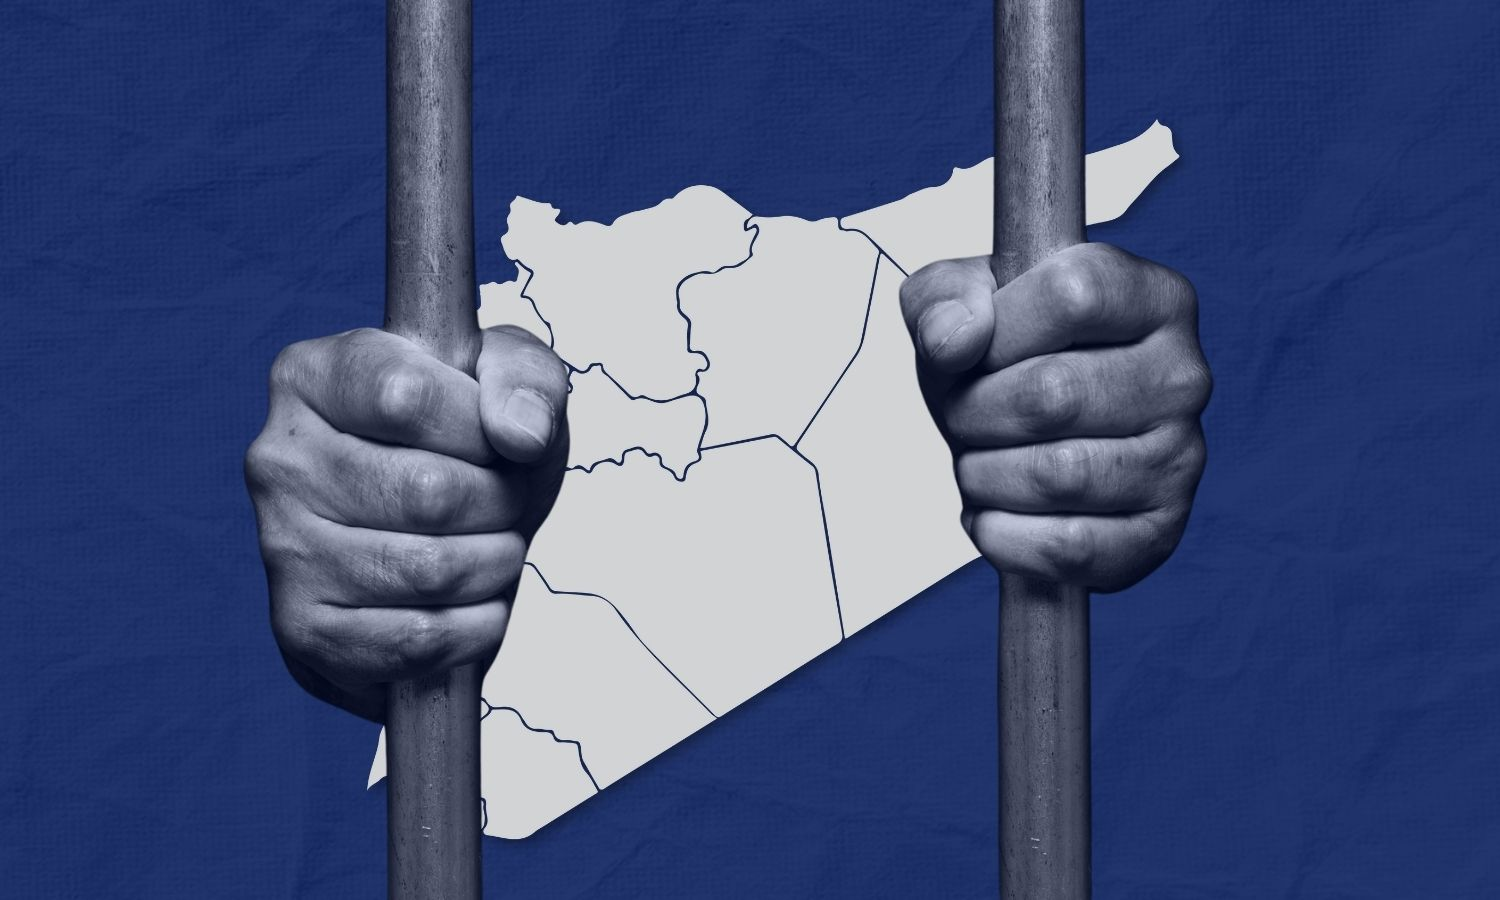 Hands holding prison bars with a map of Syria in the background (edited by Enab Baladi)